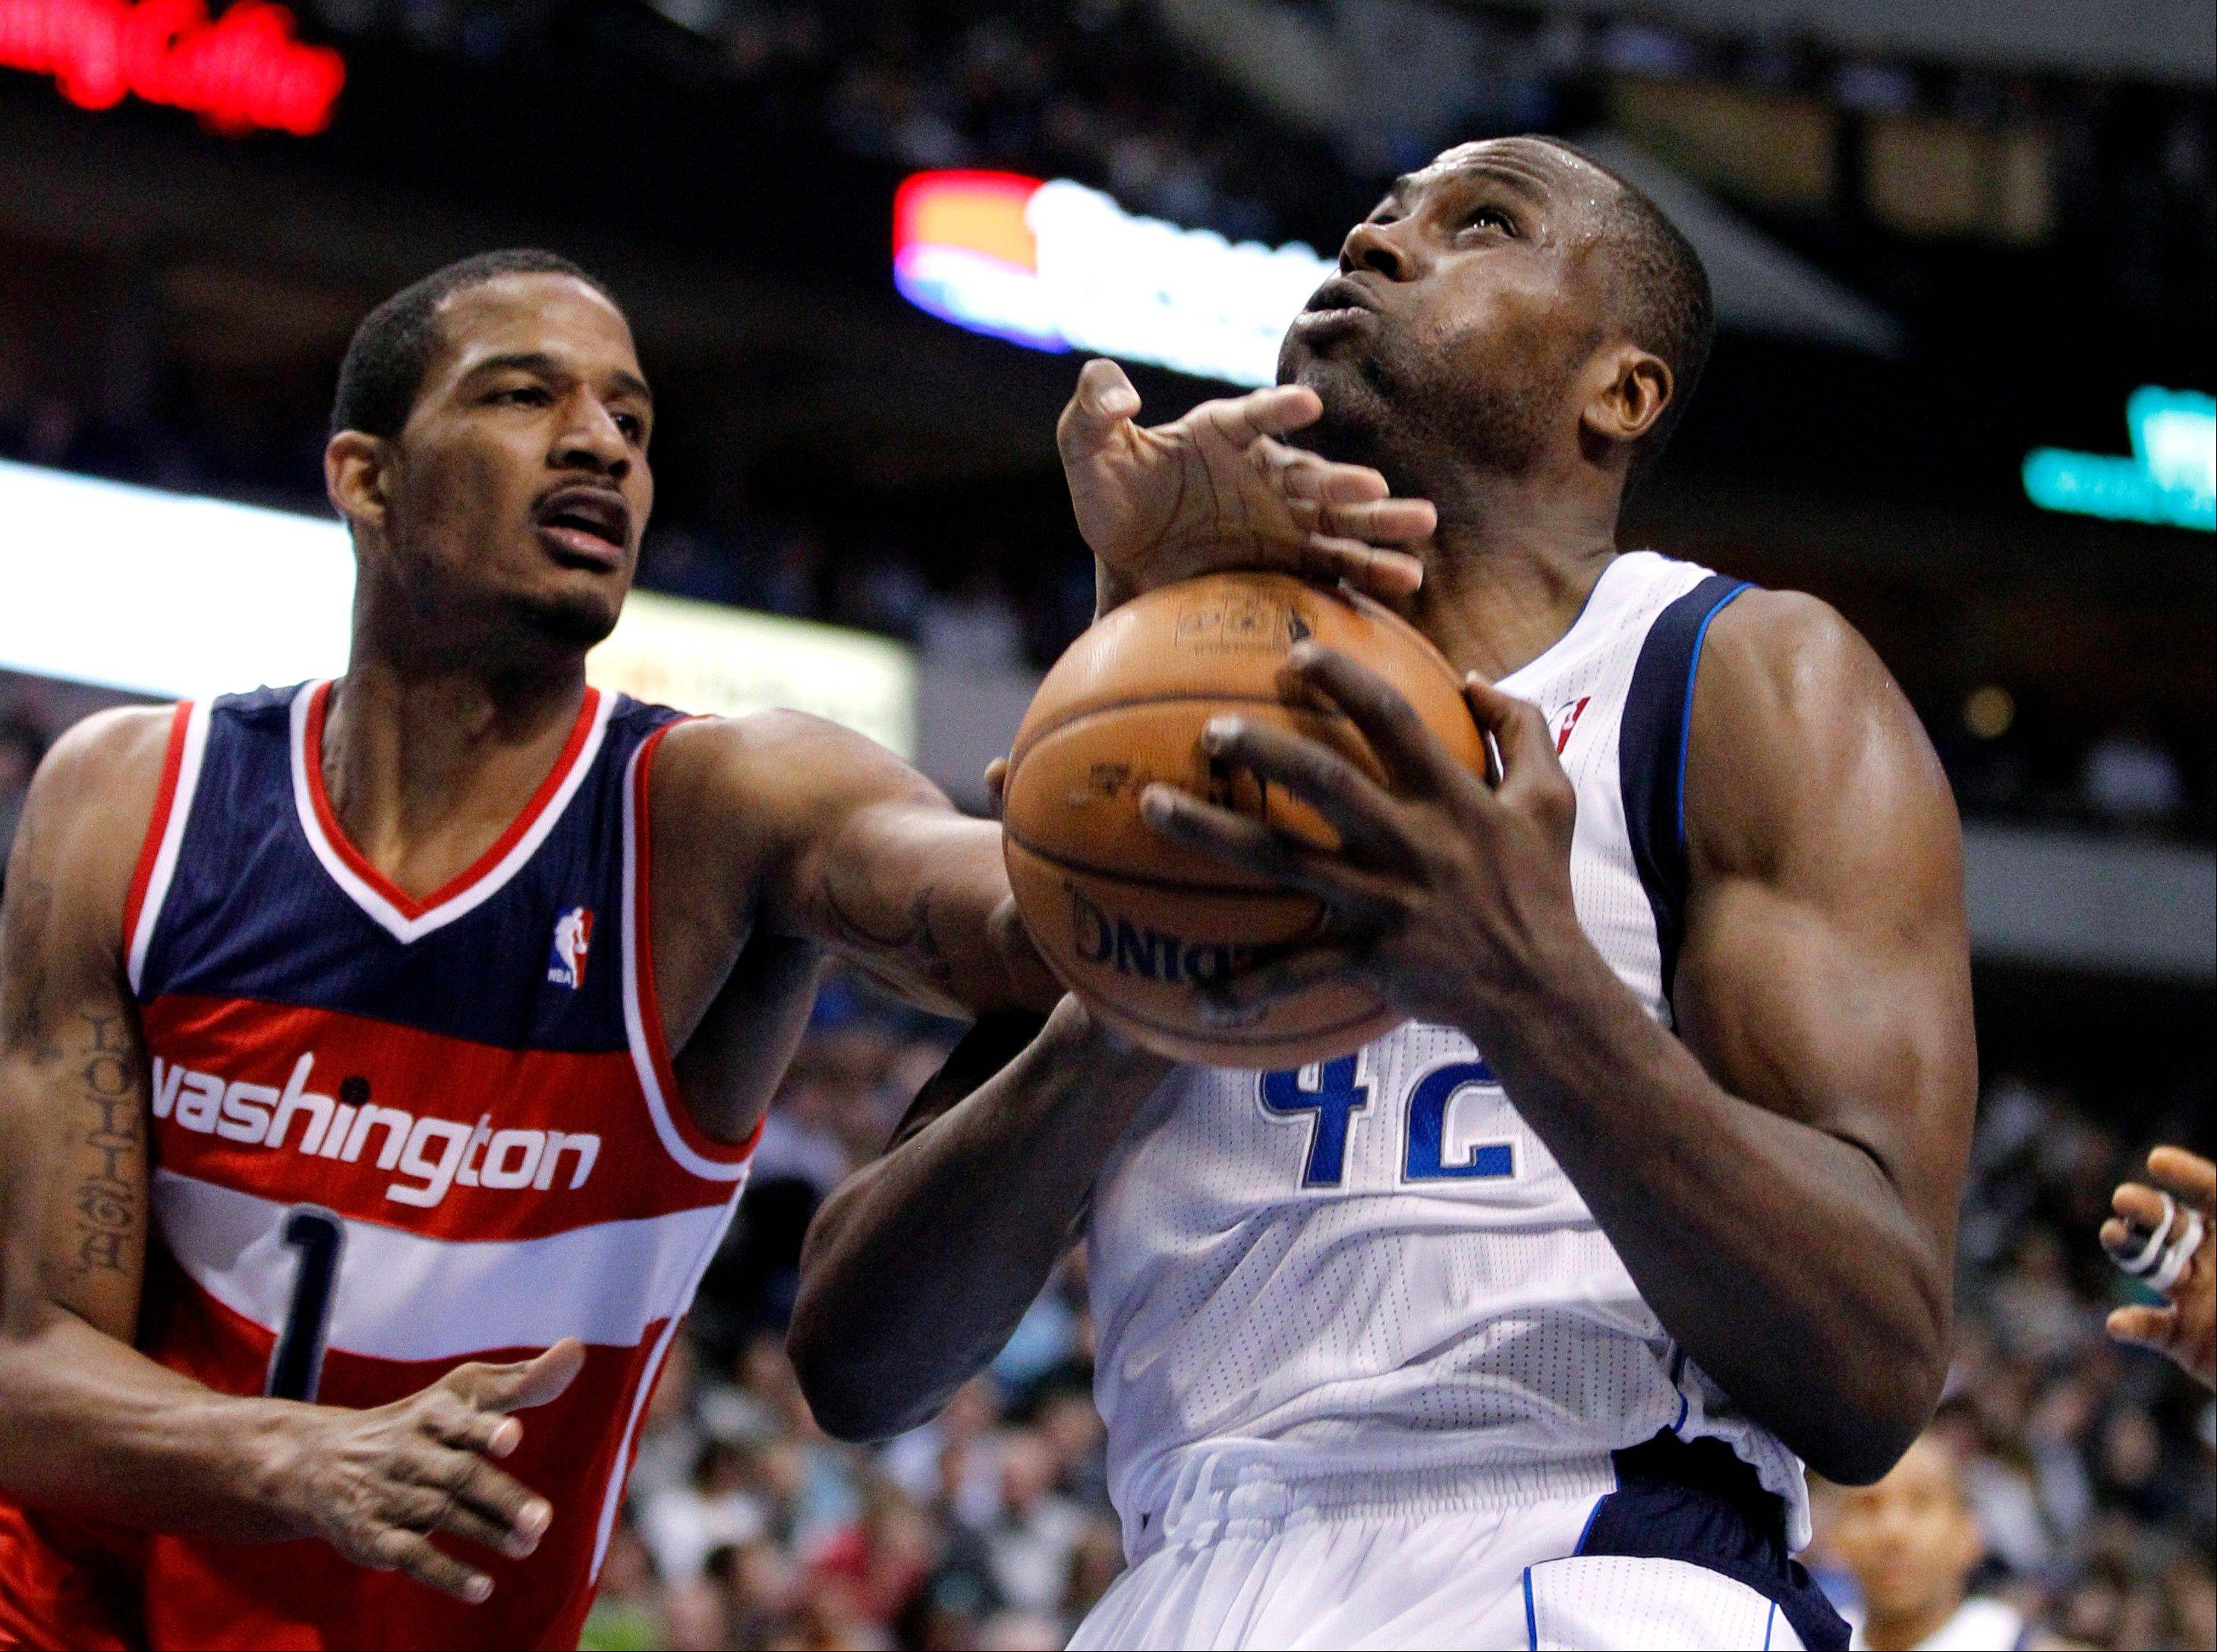 The Washington Wizards' Trevor Ariza stops a drive to the basket by the Dallas Mavericks' Elton Brand Wednesday during the second half in Dallas. The Mavericks won 107-101.